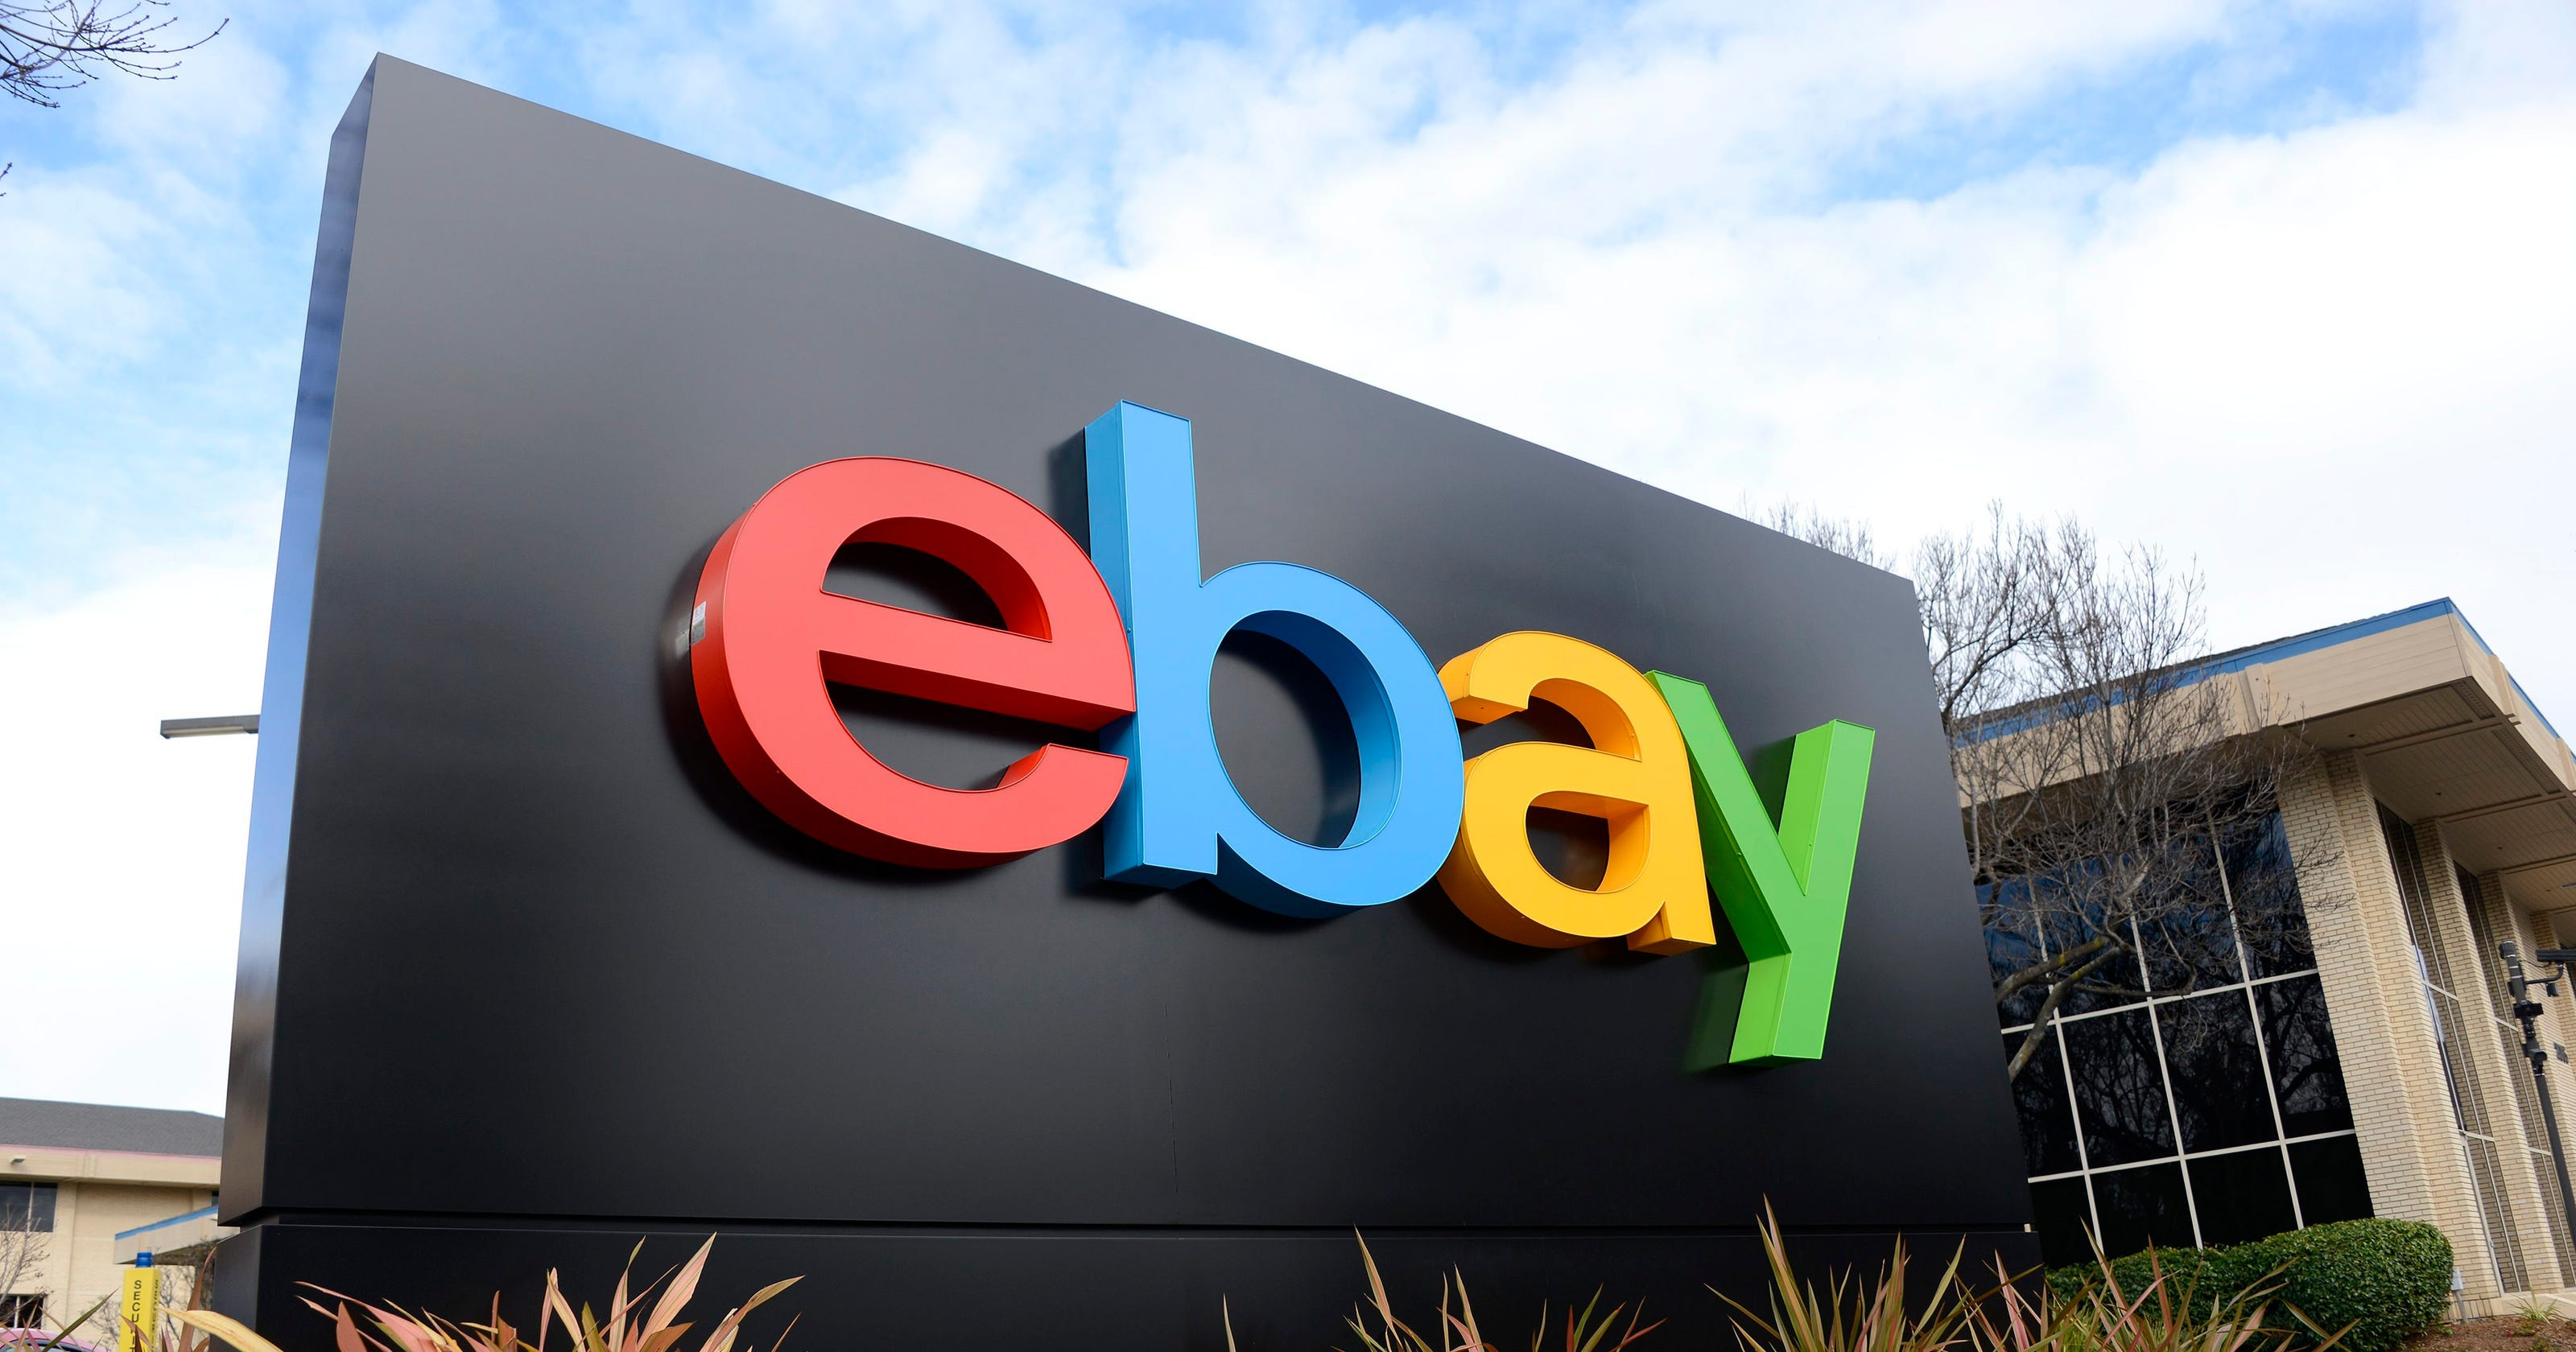 EBay is dropping PayPal